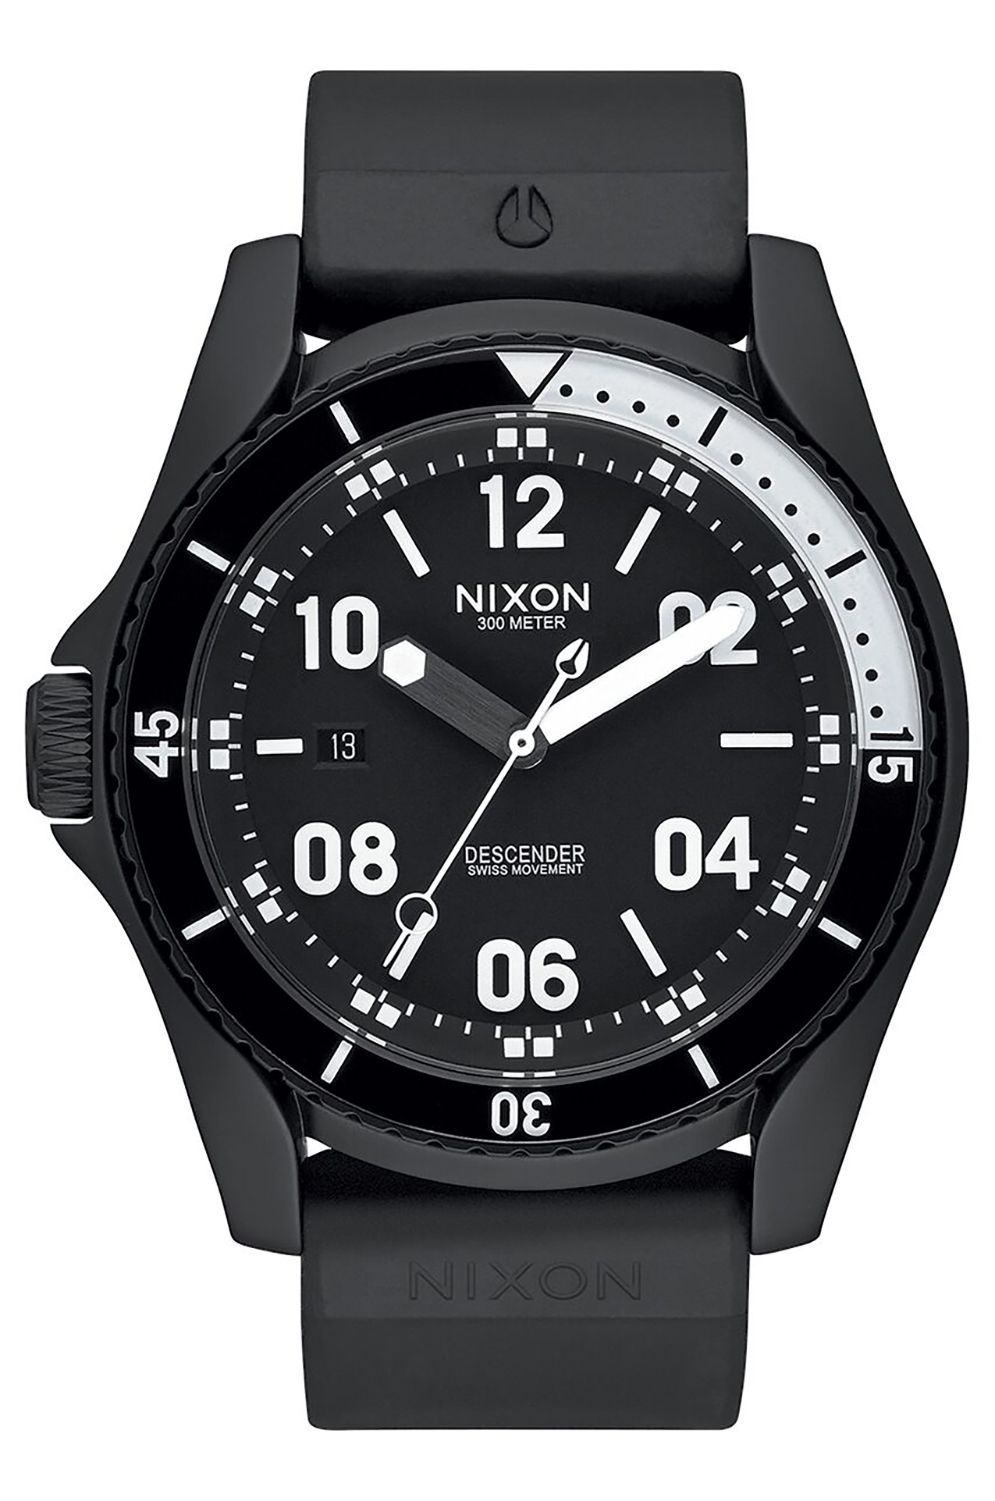 Relogio Nixon DESCENDER SPORT All Black